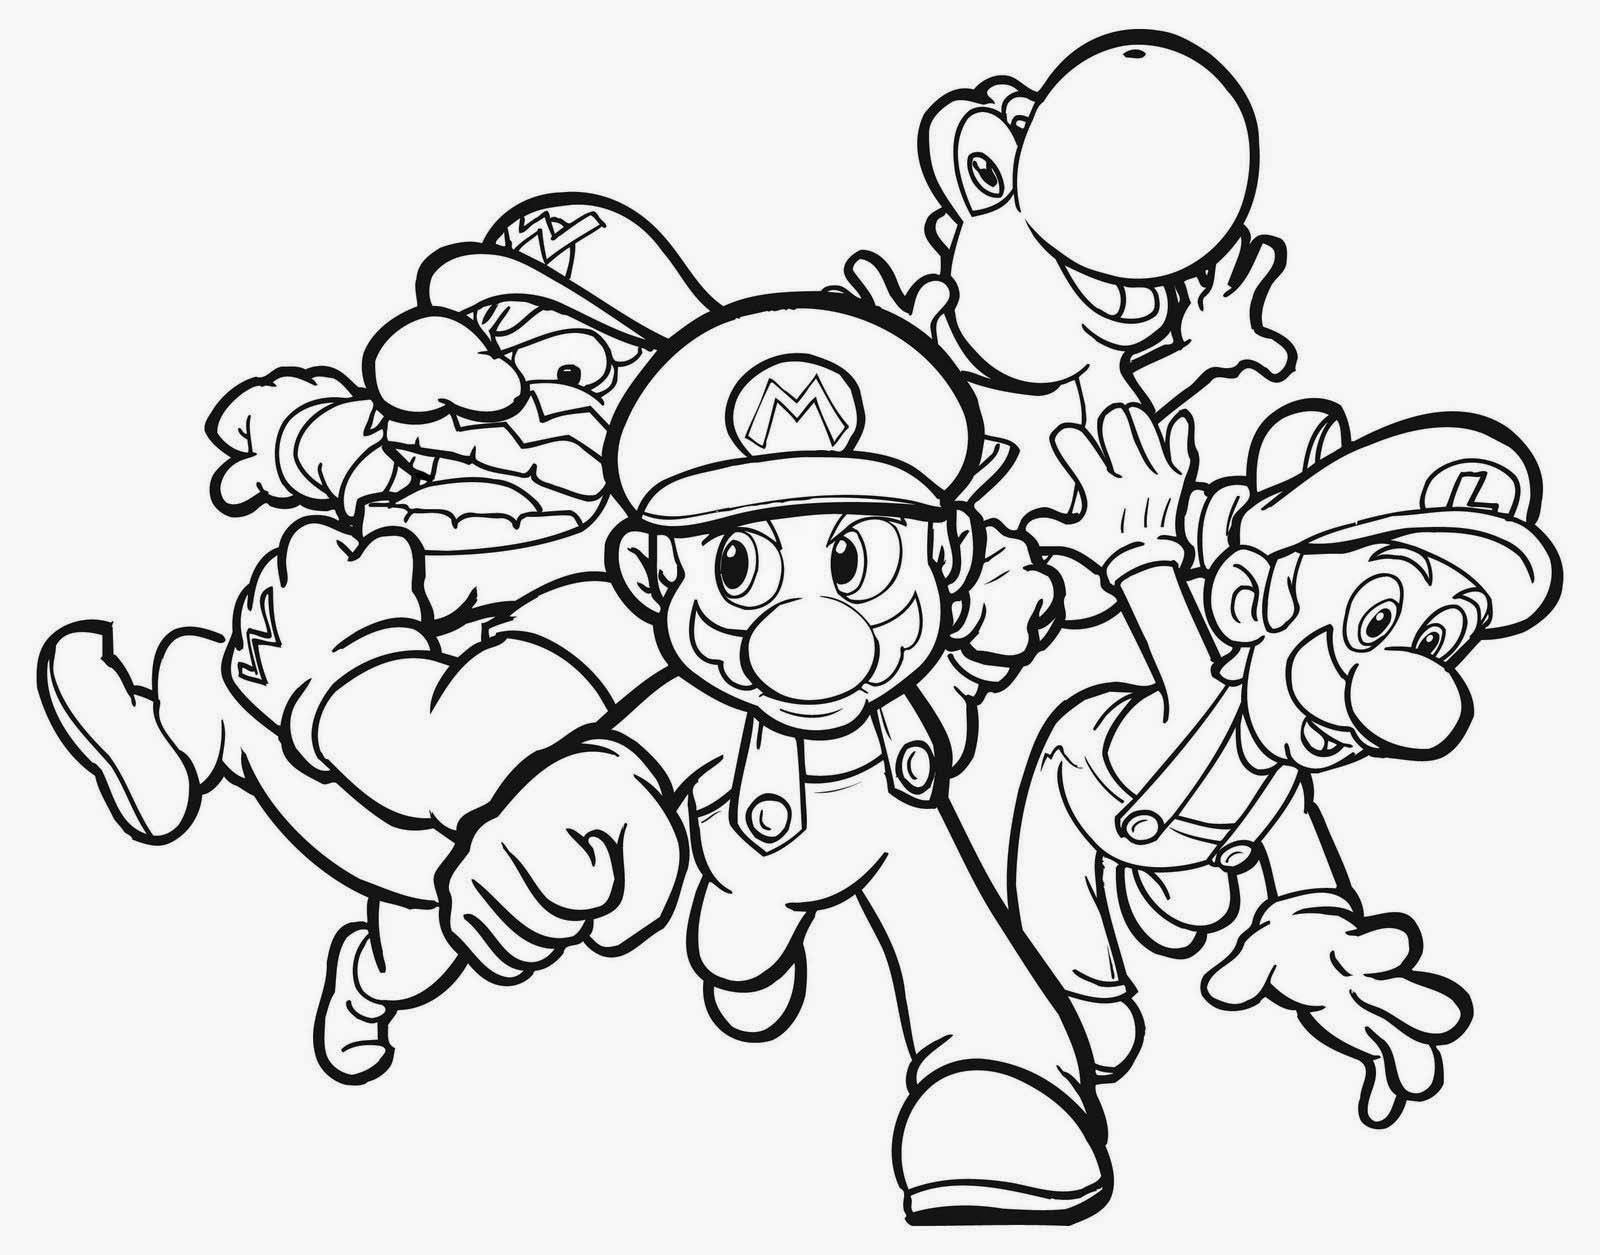 free mario coloring pages official mario coloring pages super mario coloring pages coloring free mario pages